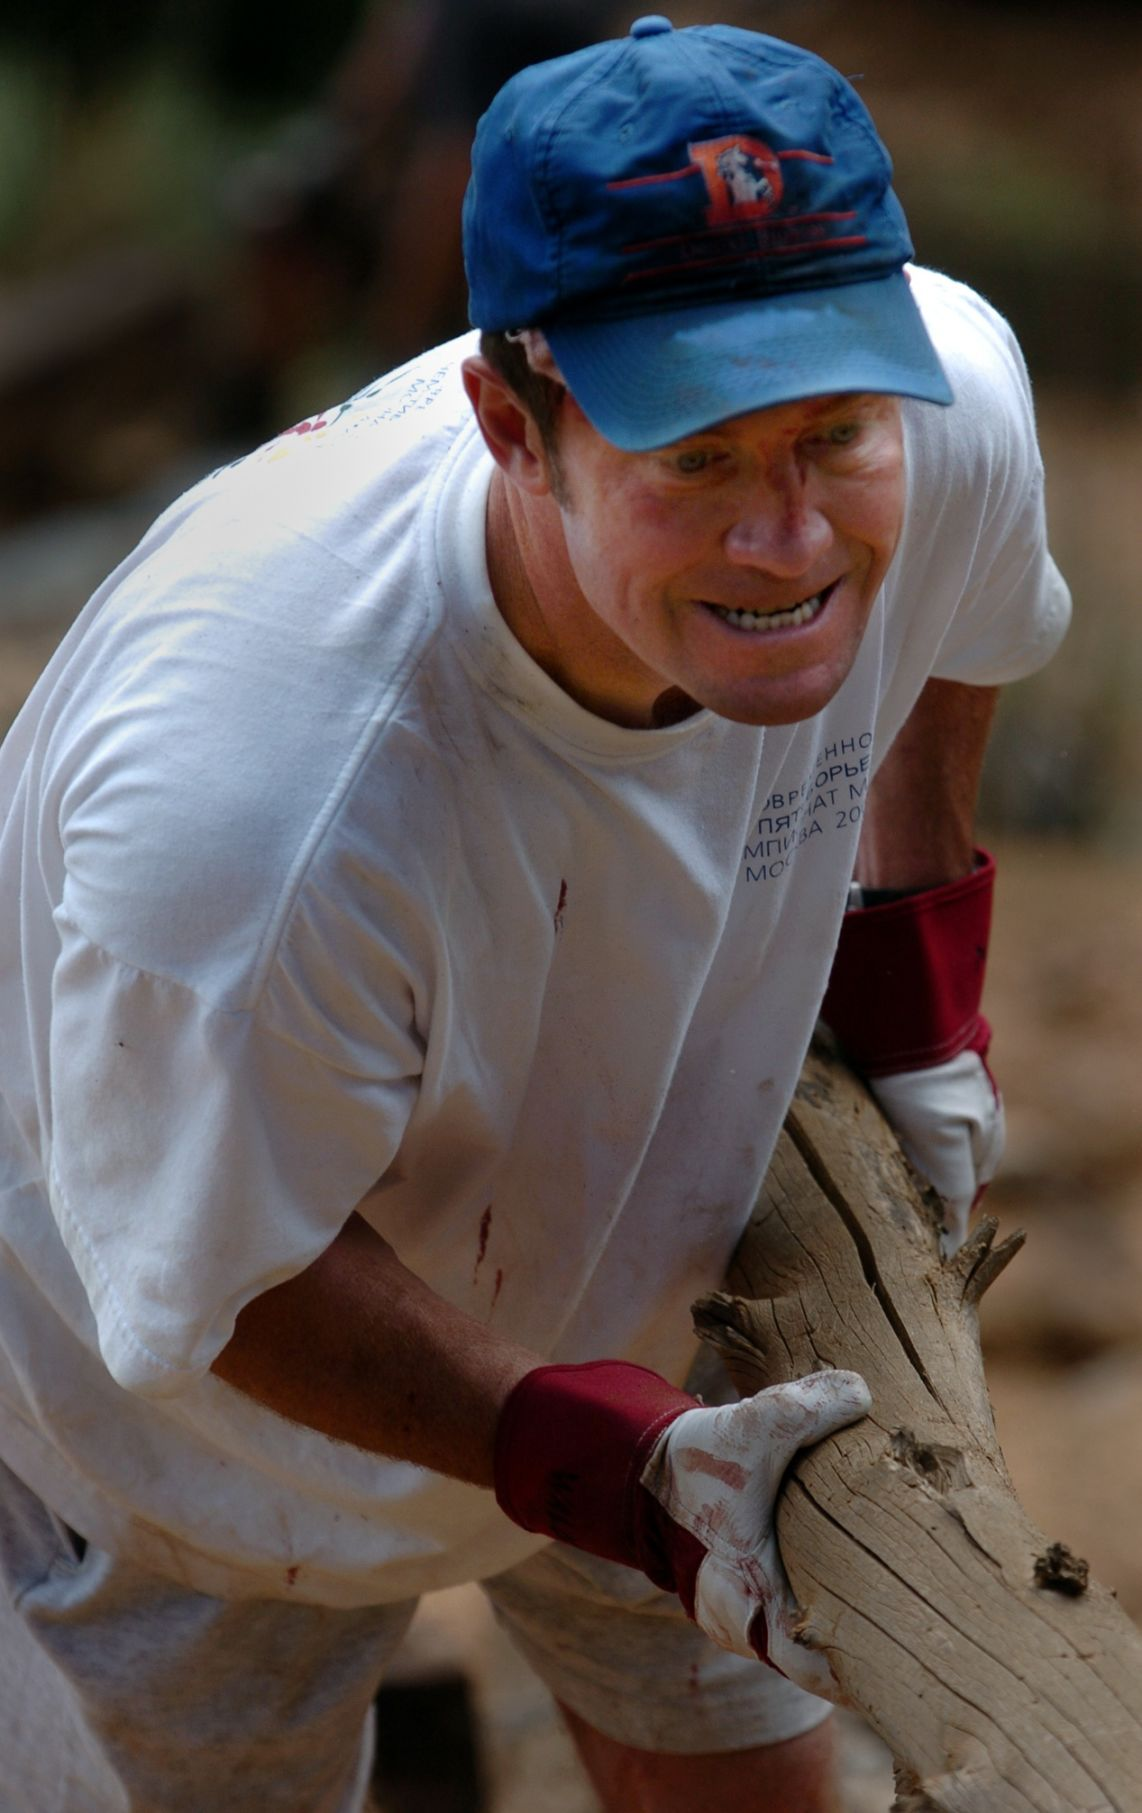 Colorado Springs surgeon Dave Walden helps build a retaining wall next to the incline trail in Manitou Springs, Colo., Saturday, Sept. 10, 2005. Walden is one of the volunteers who try to keep the steep trail up Mount Manitou safe for hikers and runners. Photo by Christian Murdock/The Gazette